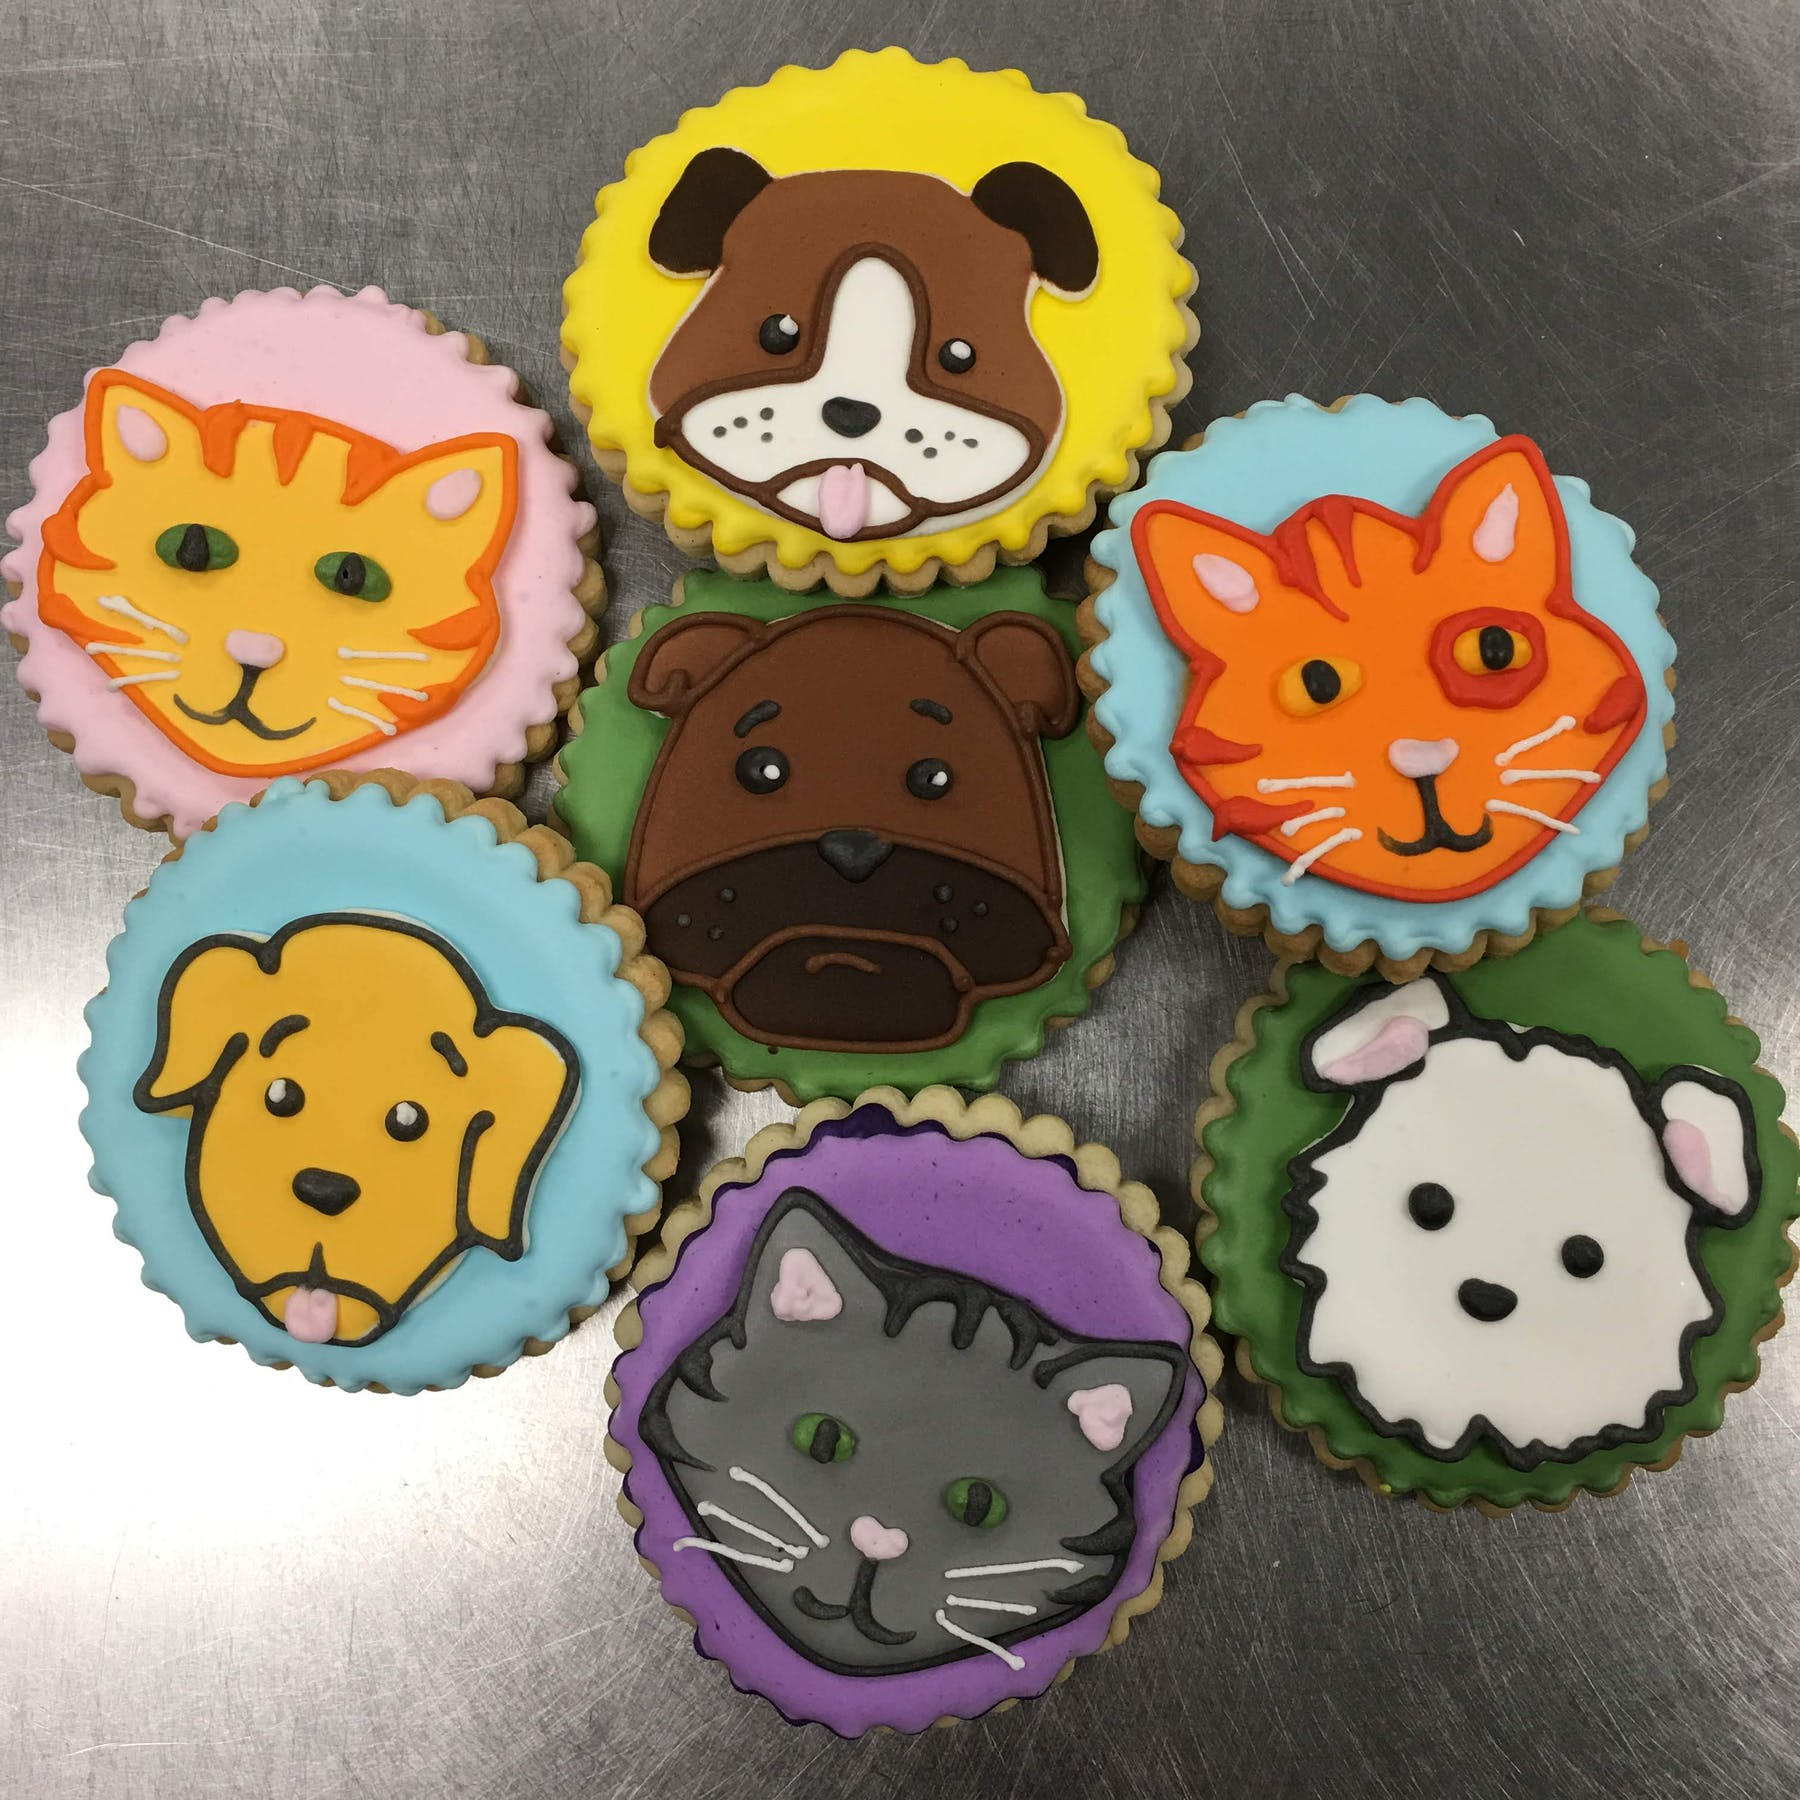 a group of cats and dogs drawn on cookies